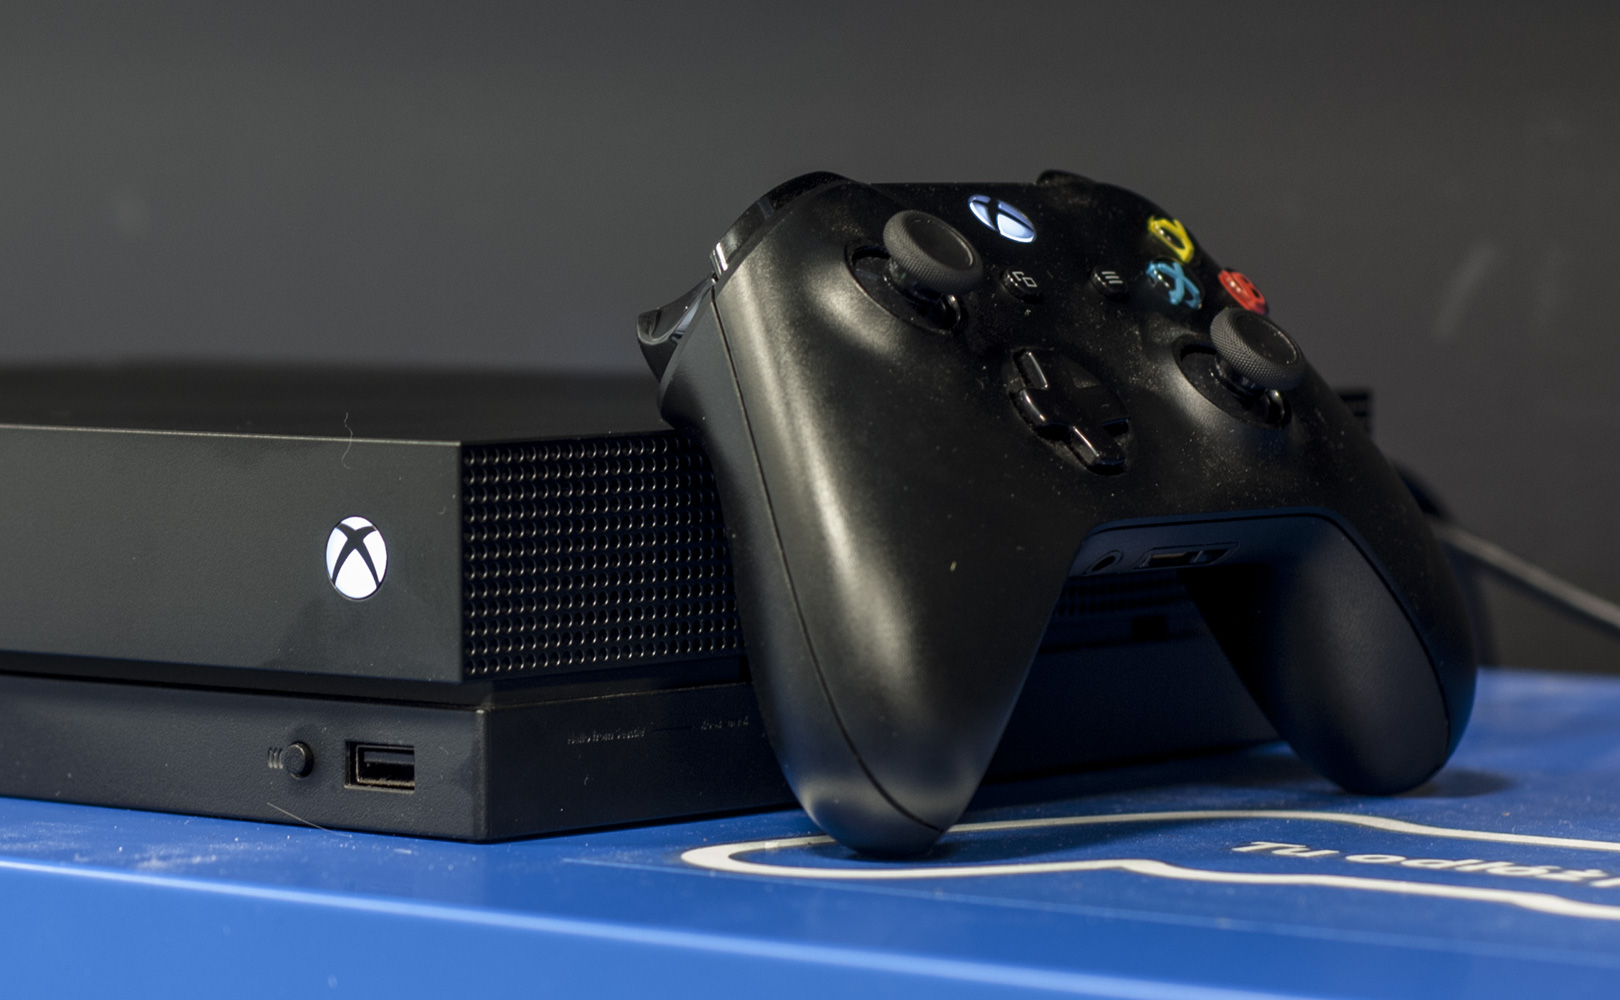 Xbox One X z gamepadem